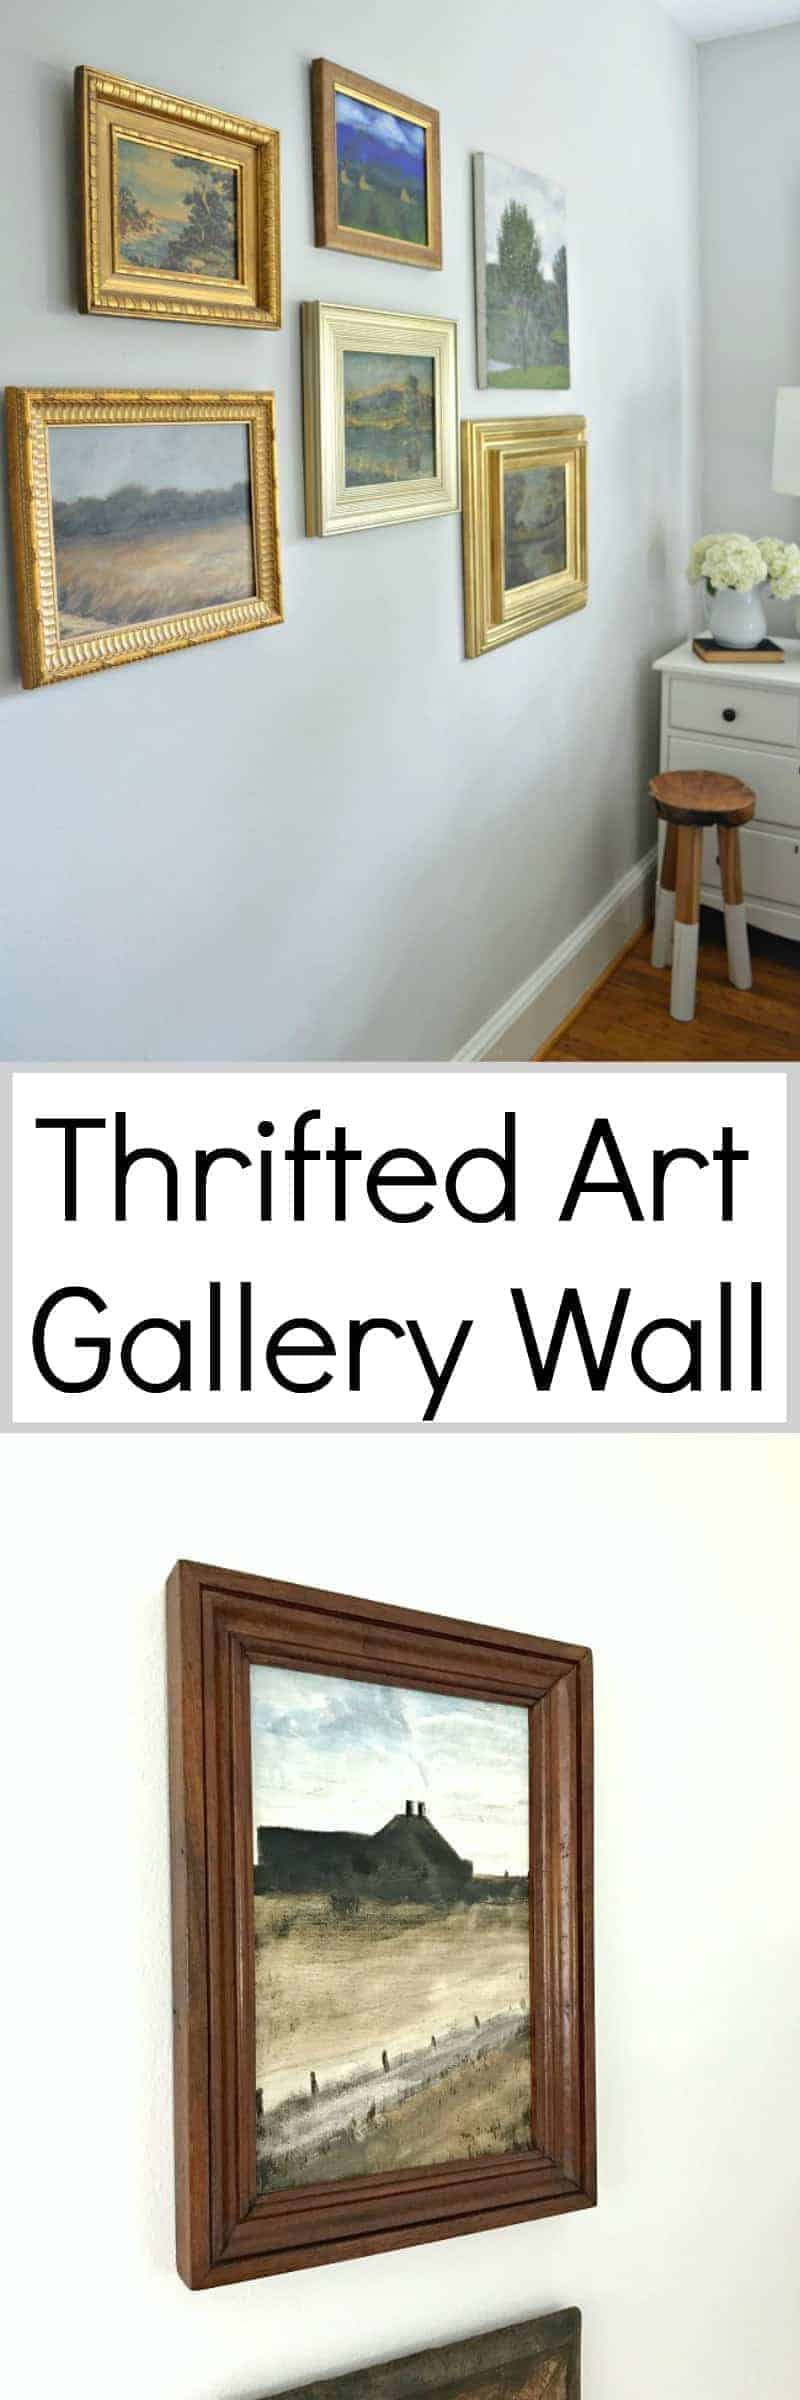 How to use thrift store art to make a gallery wall in a master bedroom. A fun way to repurpose old art from thrift stores and flea markets